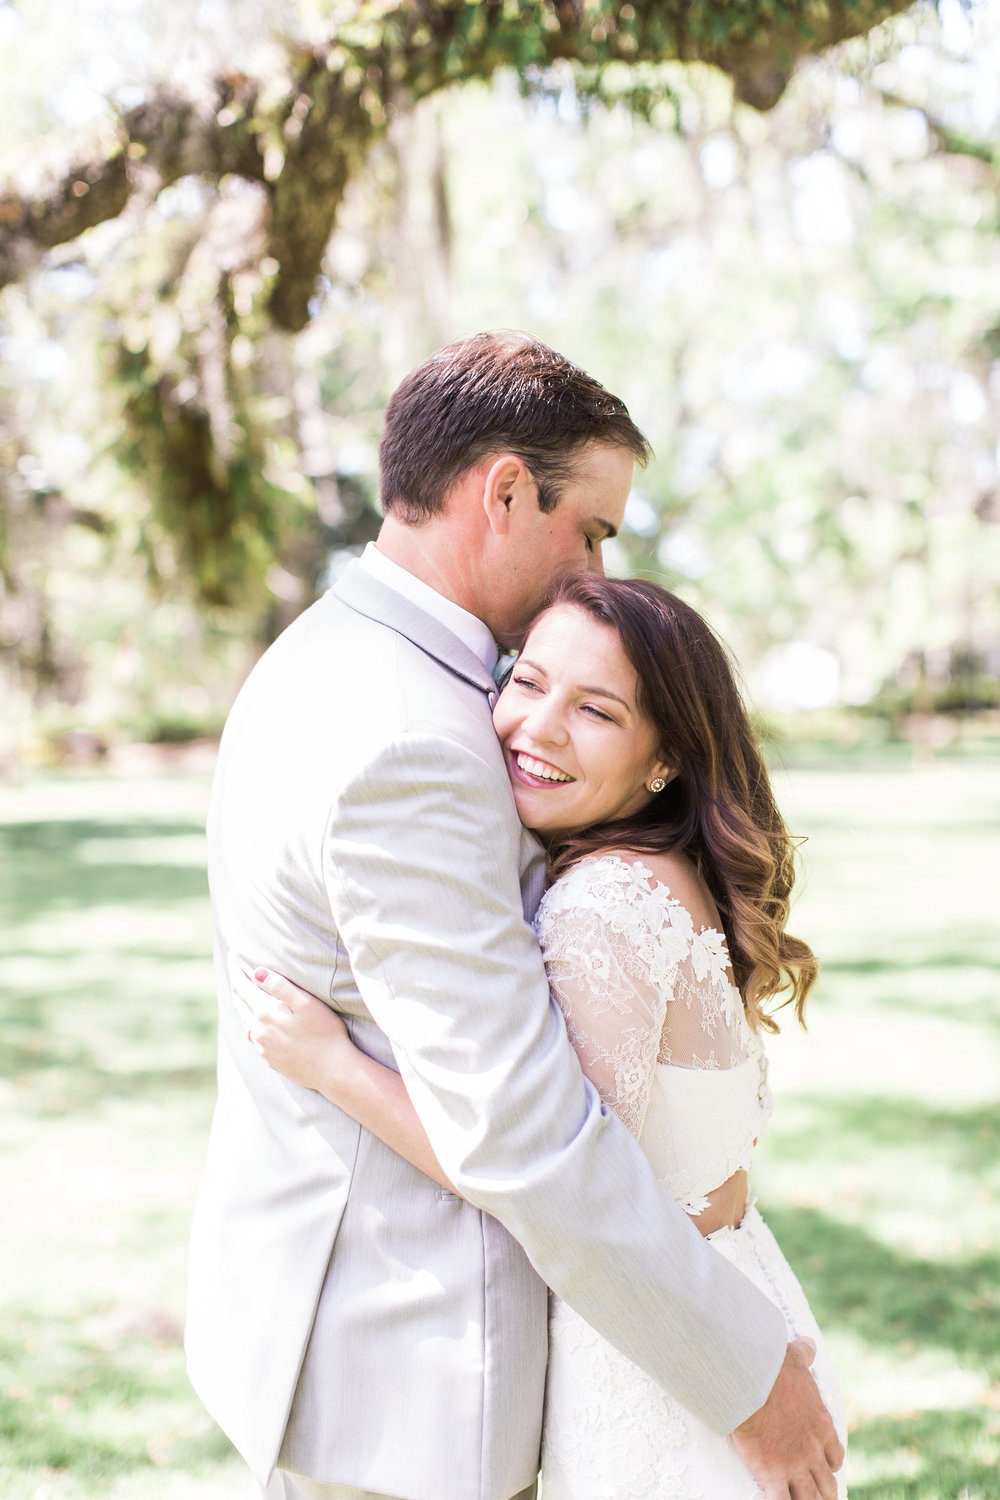 apt-b-photography-ivory-and-beau-bridal-boutique-savannah-florist-savannah-bridal-boutique-savannah-elopment-forsyth-fountain-wedding-intimate-wedding-southern-elopement-savannah-weddings-21.jpg